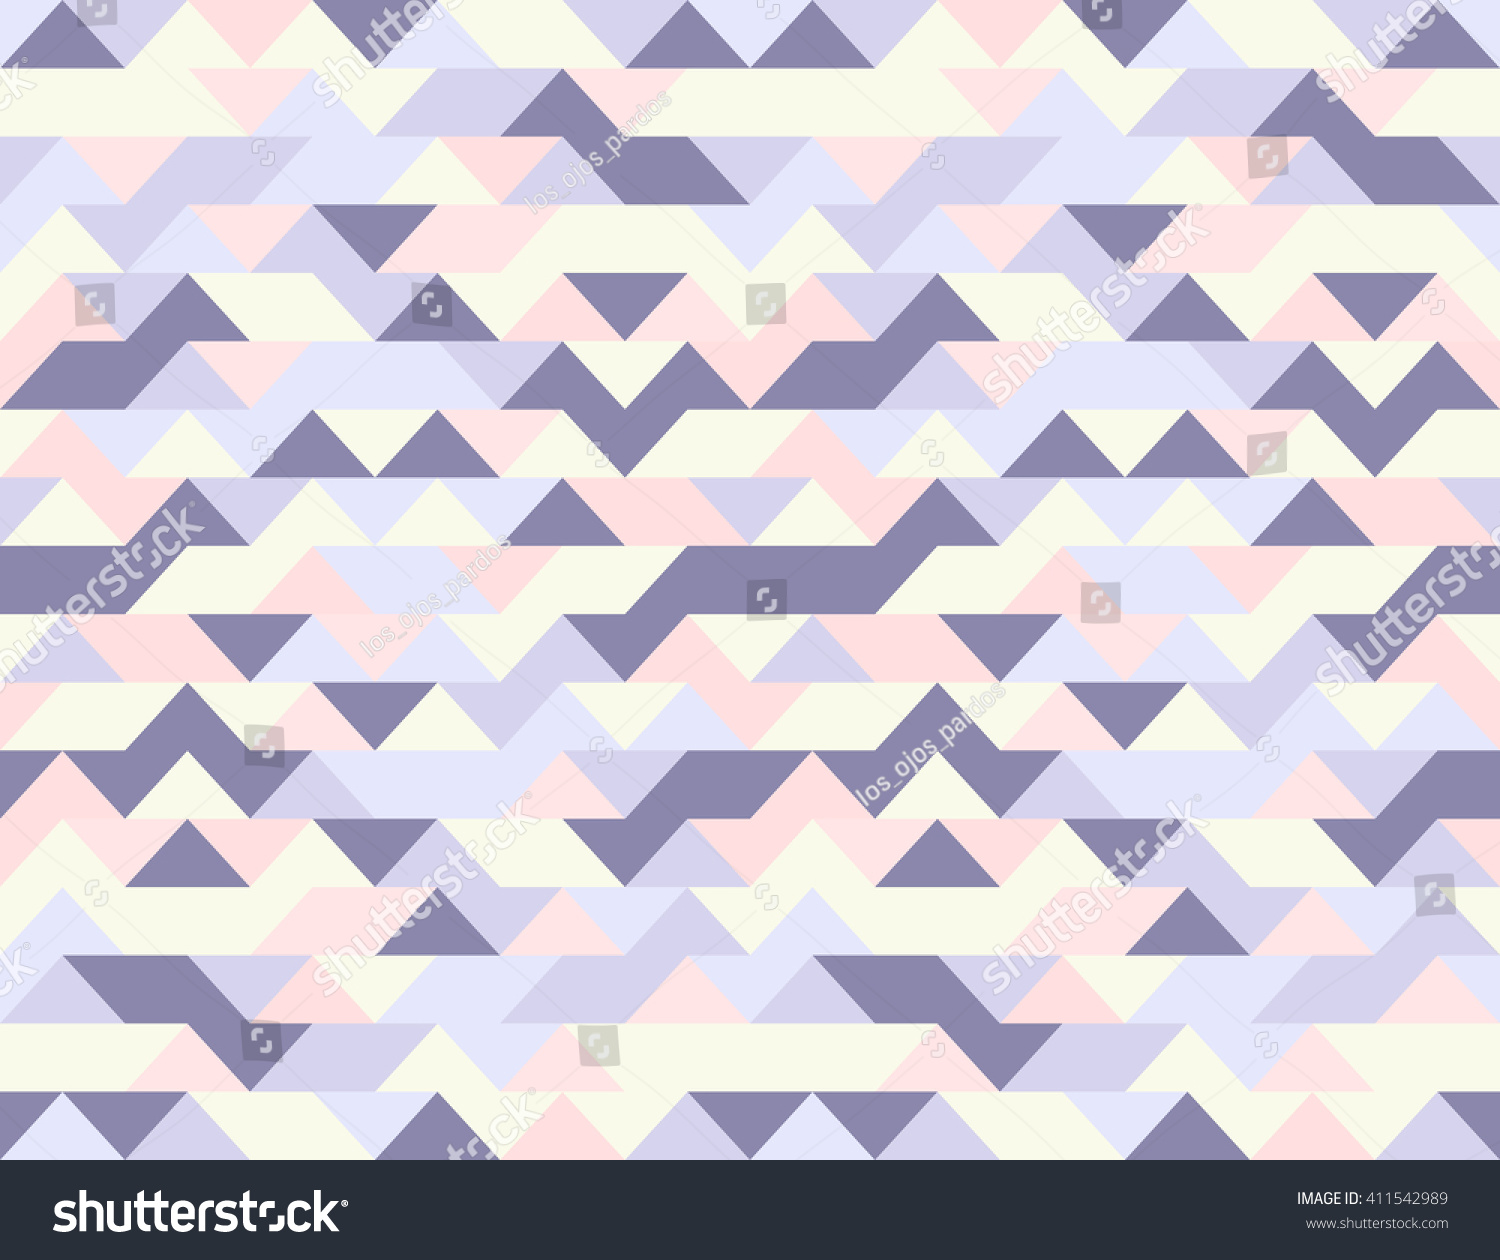 Vector seamless pattern abstract geometric style stock for Object pool design pattern